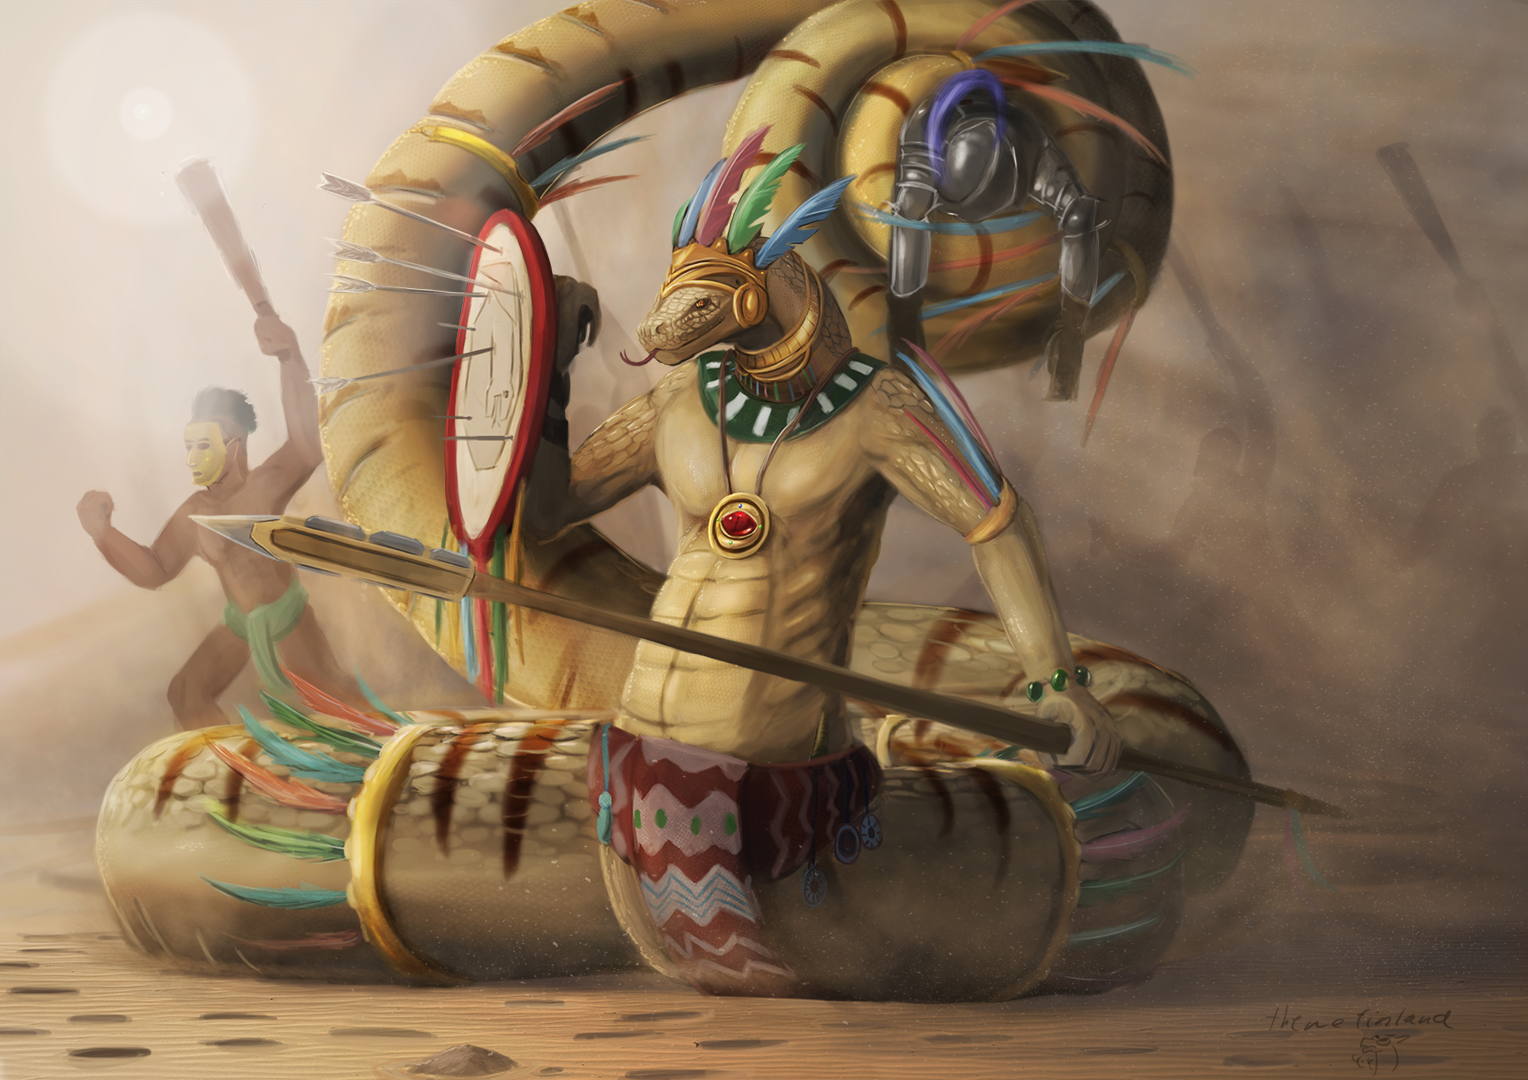 Ascended high priest of Quetzalcoatl